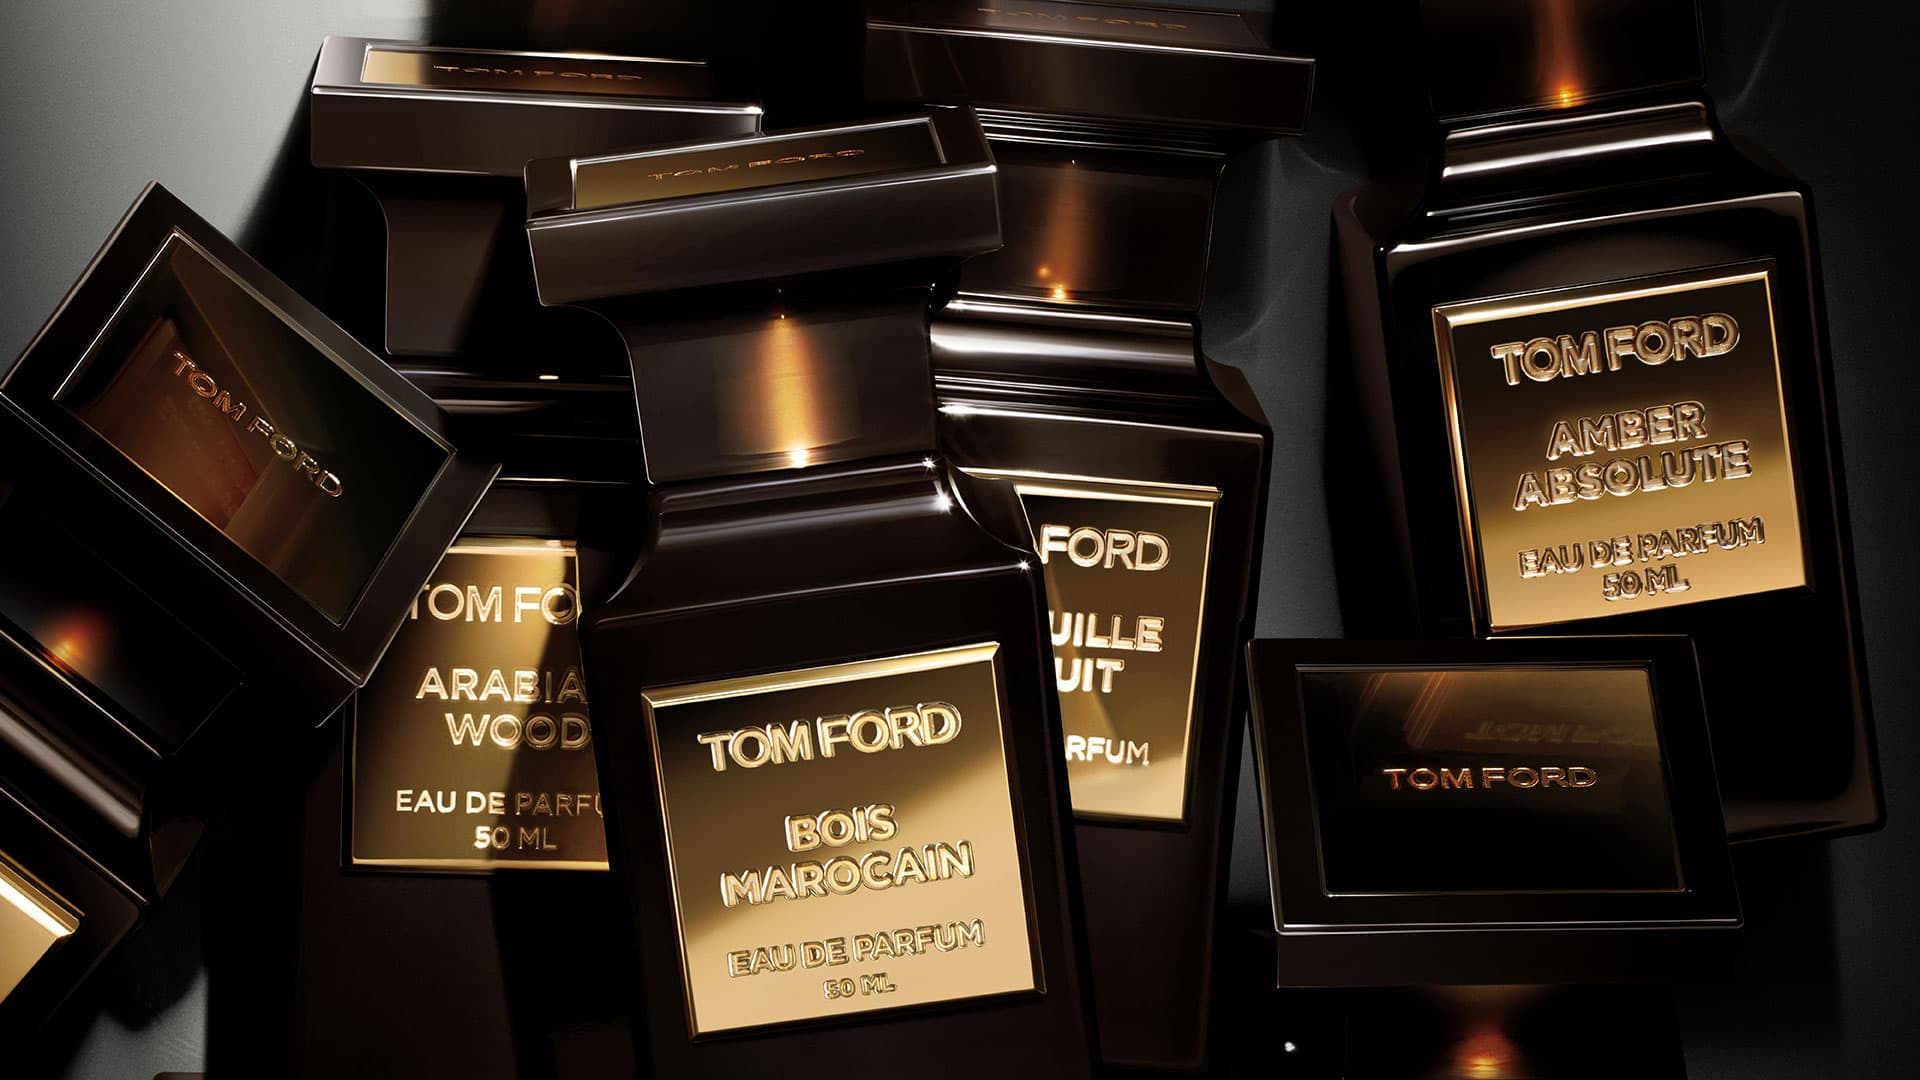 Tom Ford Perfume Lipstick Cosmetics More David Jones